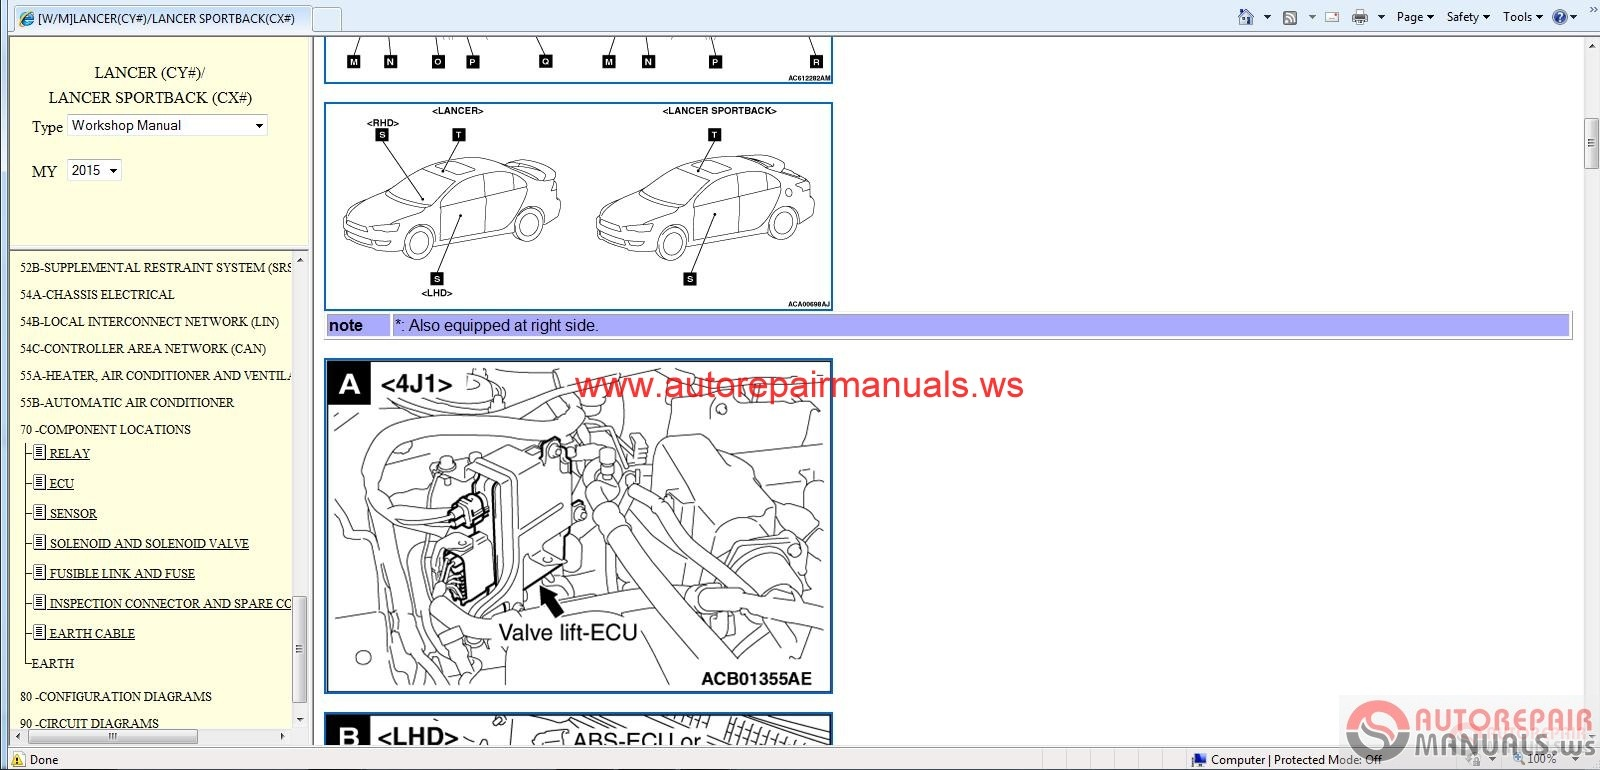 Mitsubishi Colt 1990 >> Mitsubishi Lancer 2015 and Lancer Sportback 2015  Service Manual CD |